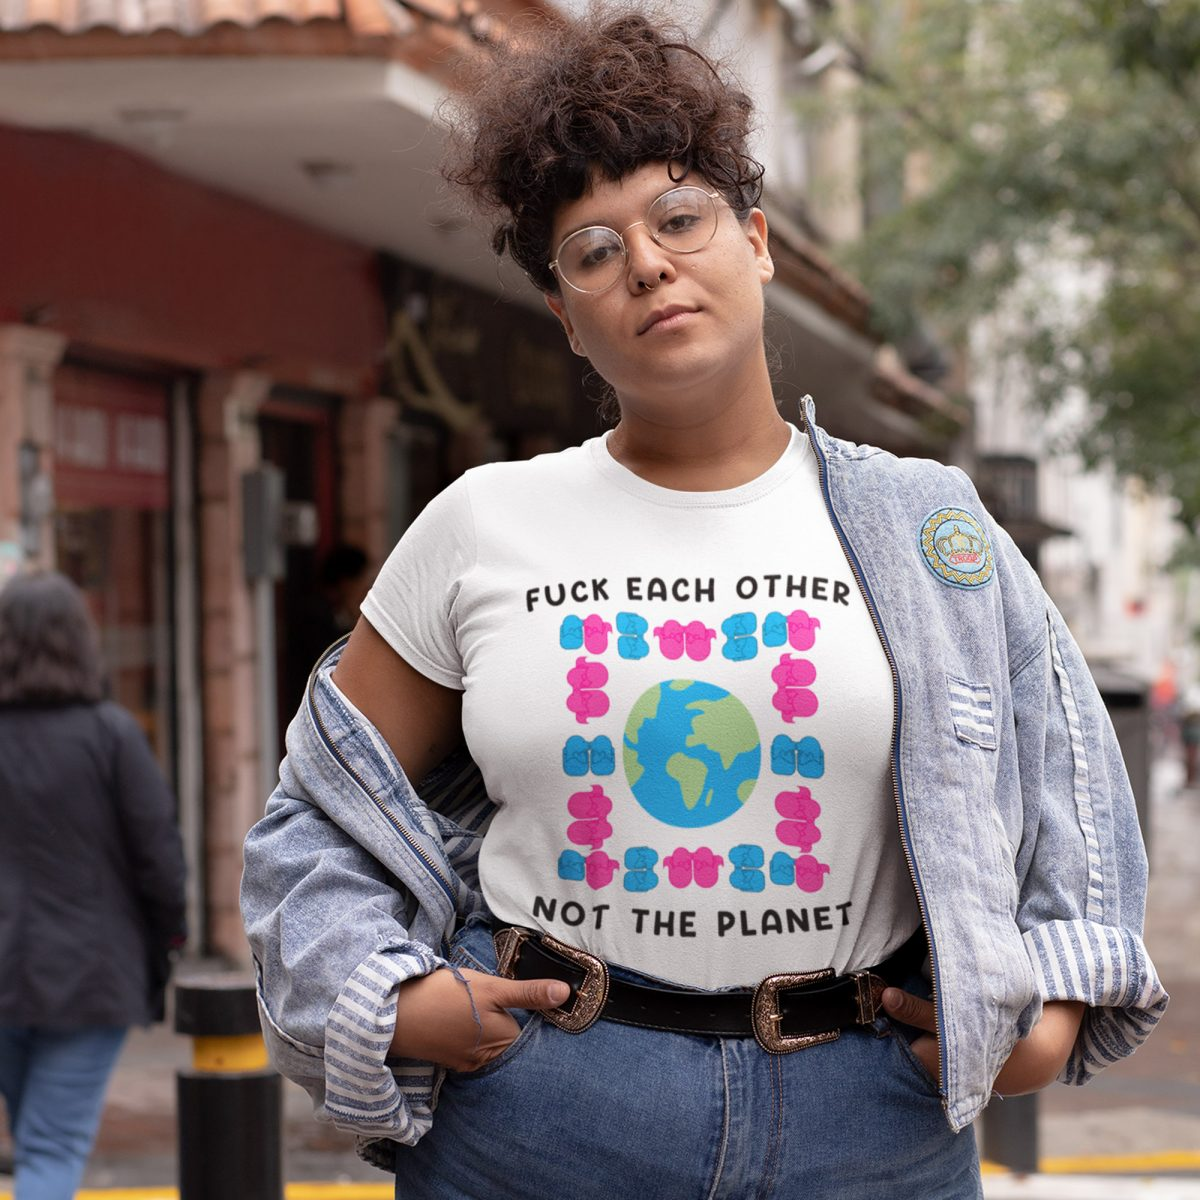 fuck-each-other-not-the-planet-filthy-BDSM-kinky-unisex-white-tshirt-1